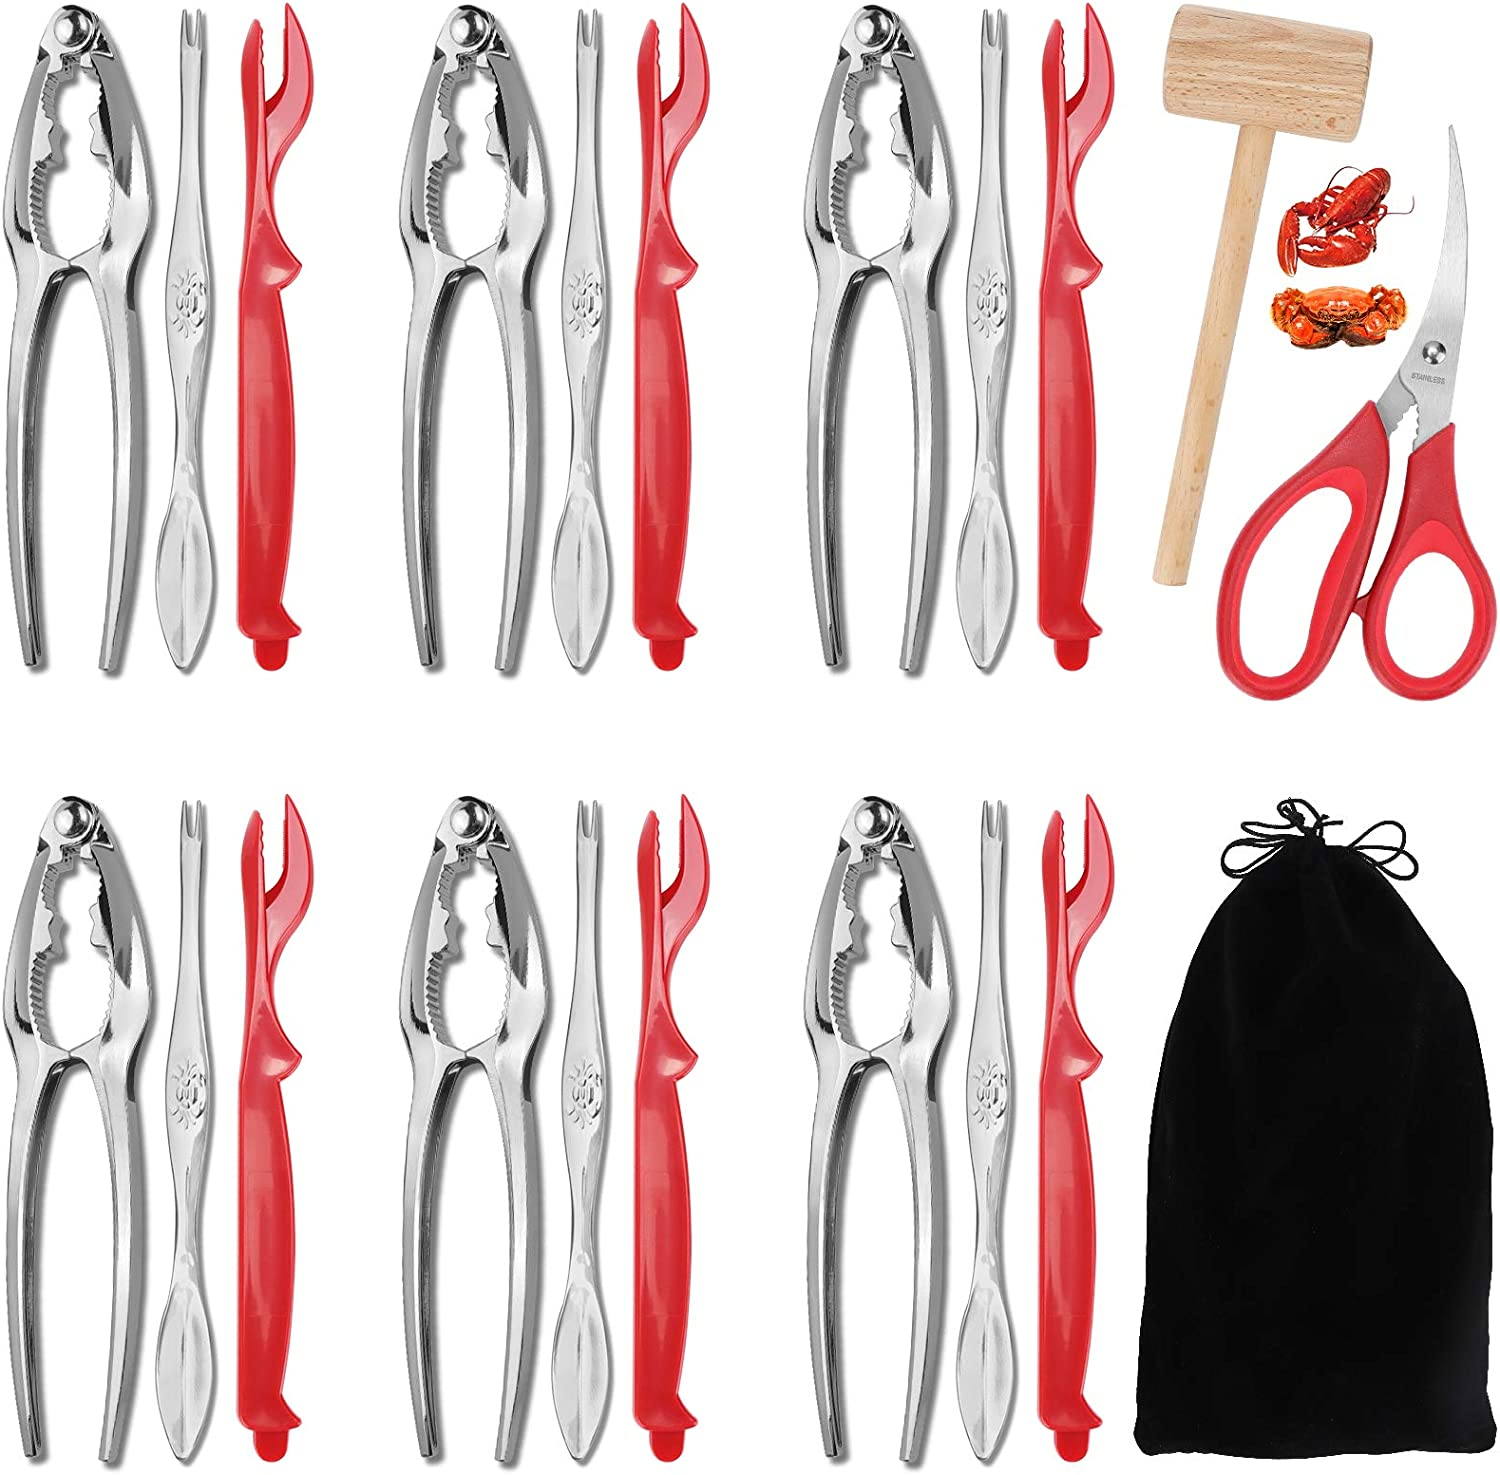 quality assurance 21 Pcs specialty shop Crab Crackers and Cracke Tools Sets-6 Seafood